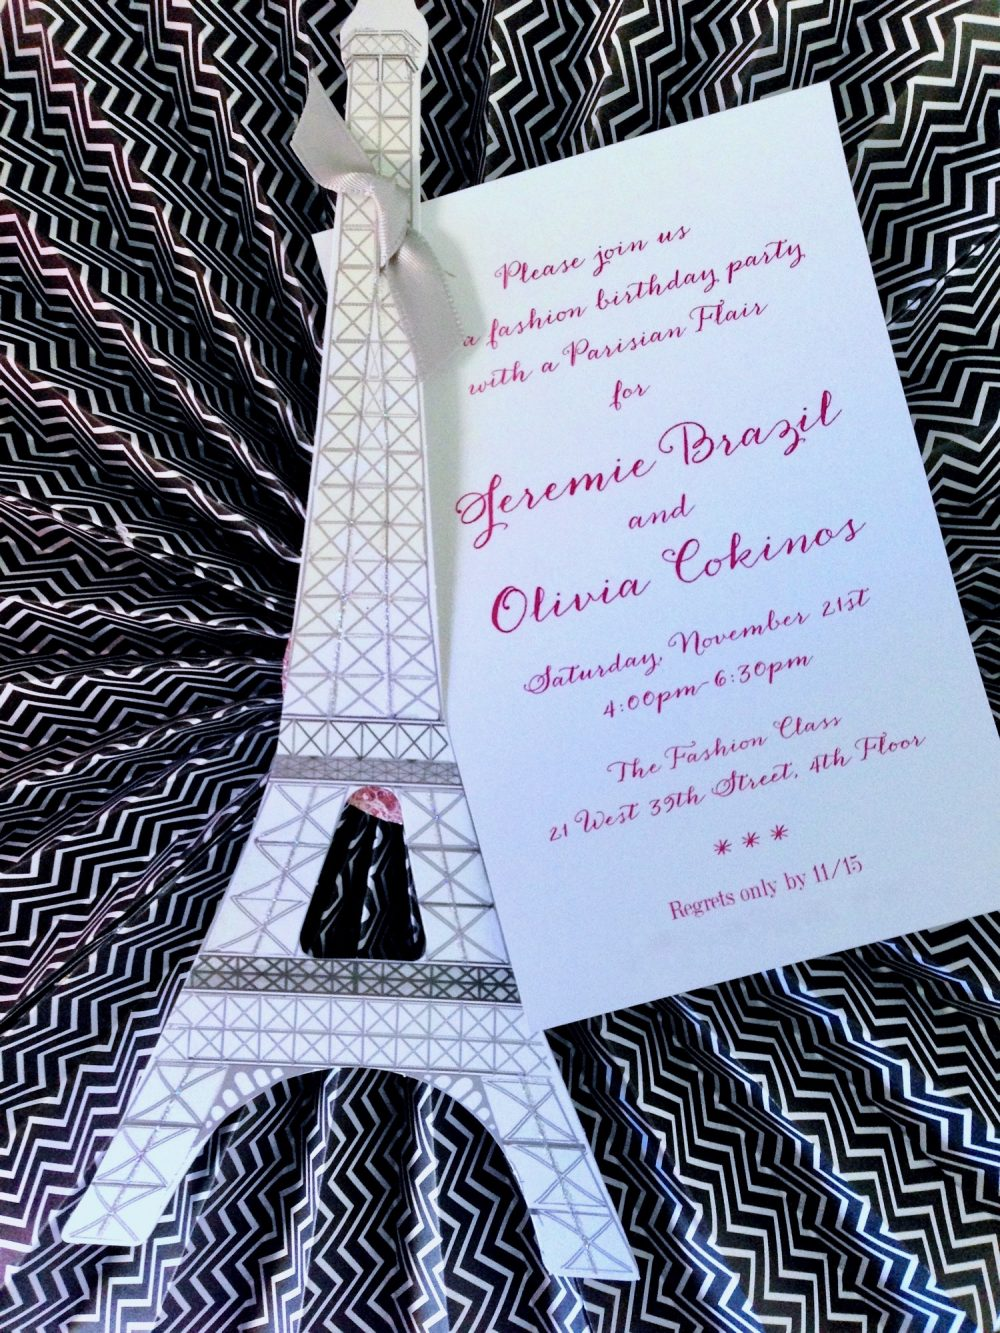 Tres Fabulous! Fashion Party with Parisian Flair | B Lee Events